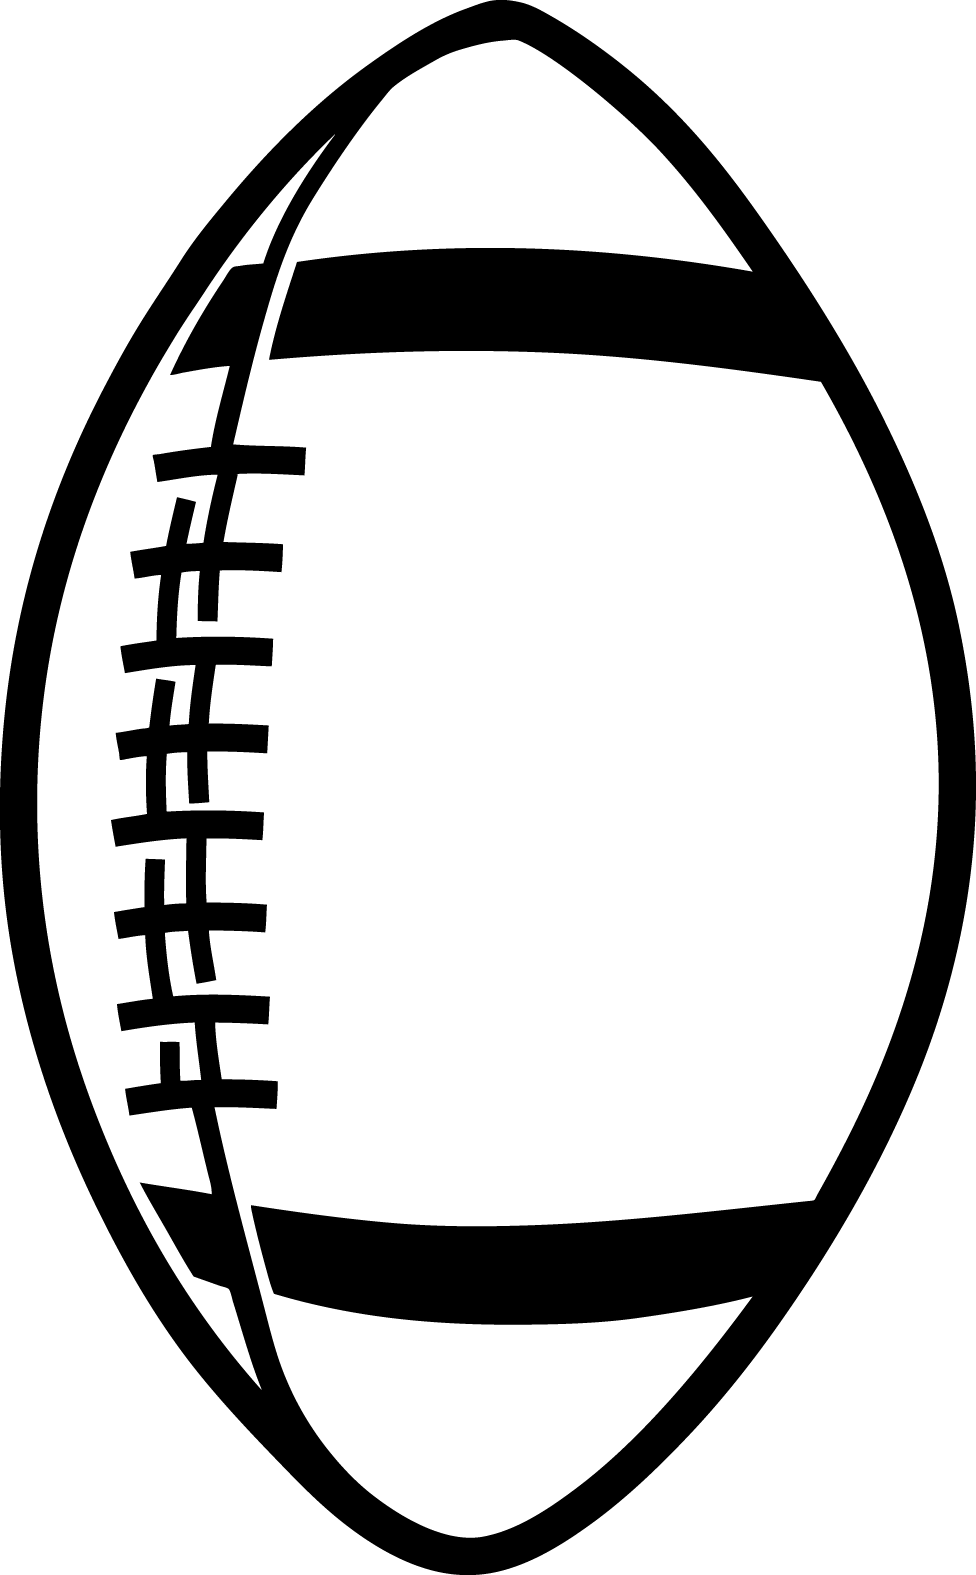 collection of football. Clipart smile border